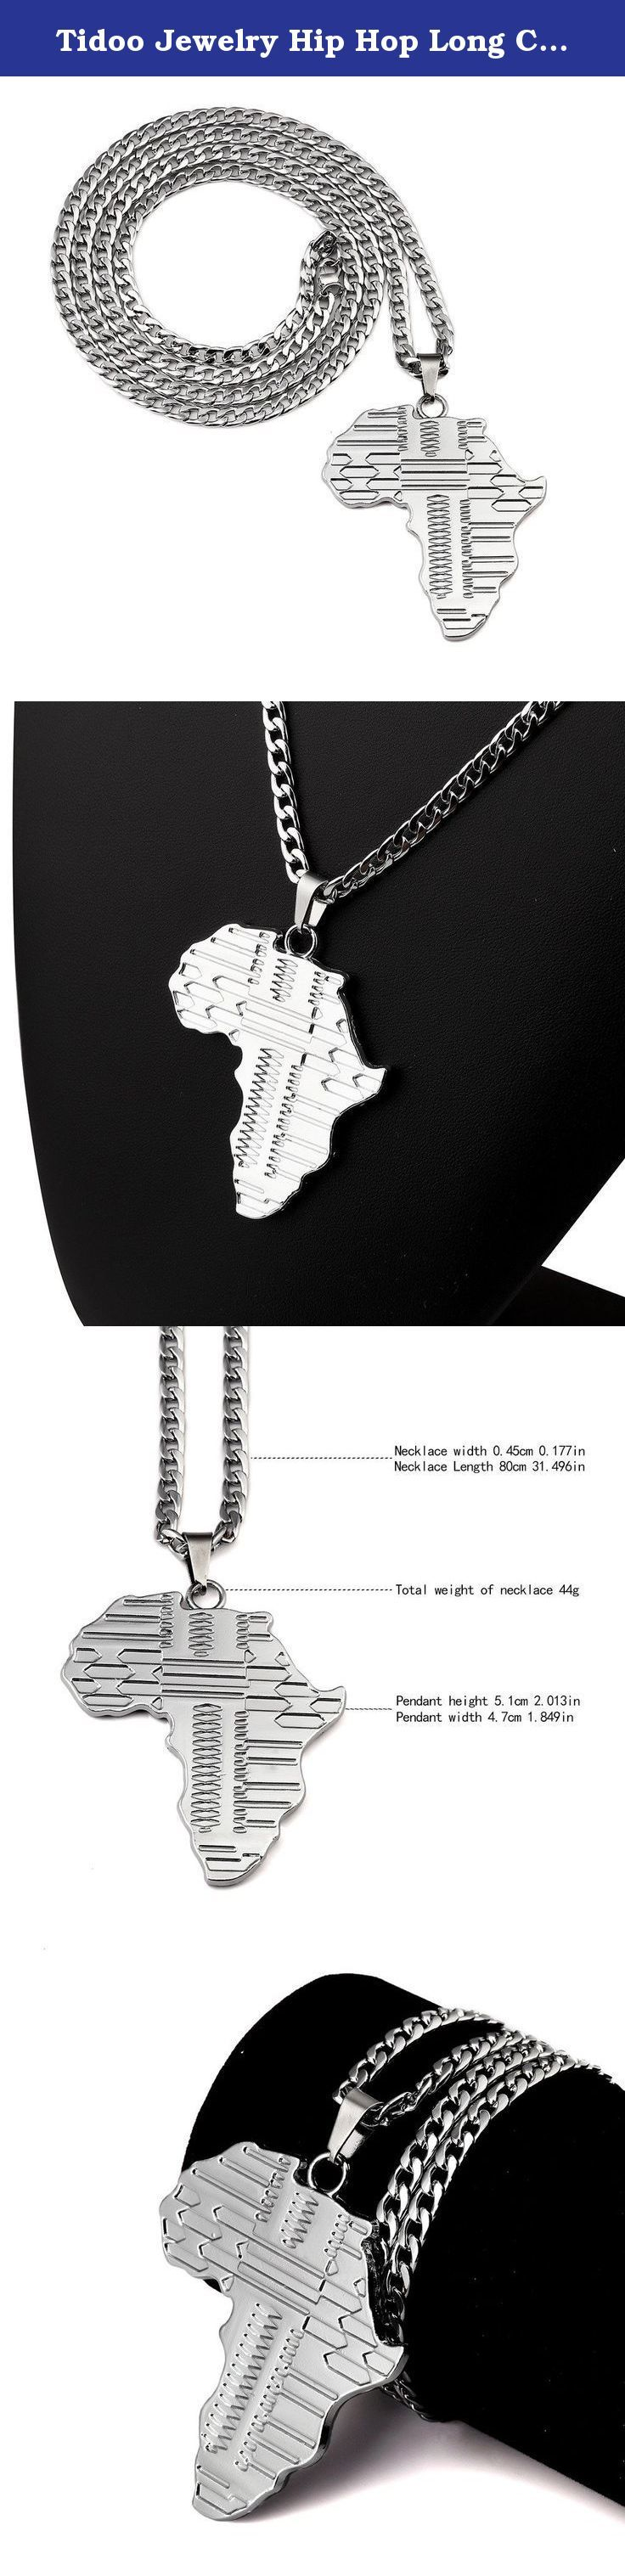 Tidoo Jewelry Hip Hop Long Chain Map of Africa Pendant Necklaces in Silver. Feature:HIP HOP, Map of Africa Color:Silver Size:Chain length 80cm(31.496in),pendant 5.1*4.7cm(2.013*1.849in) Material:Zinc Alloy Net Weight:44g (Pendant and chain) Packing:Packed with elegant gift box .